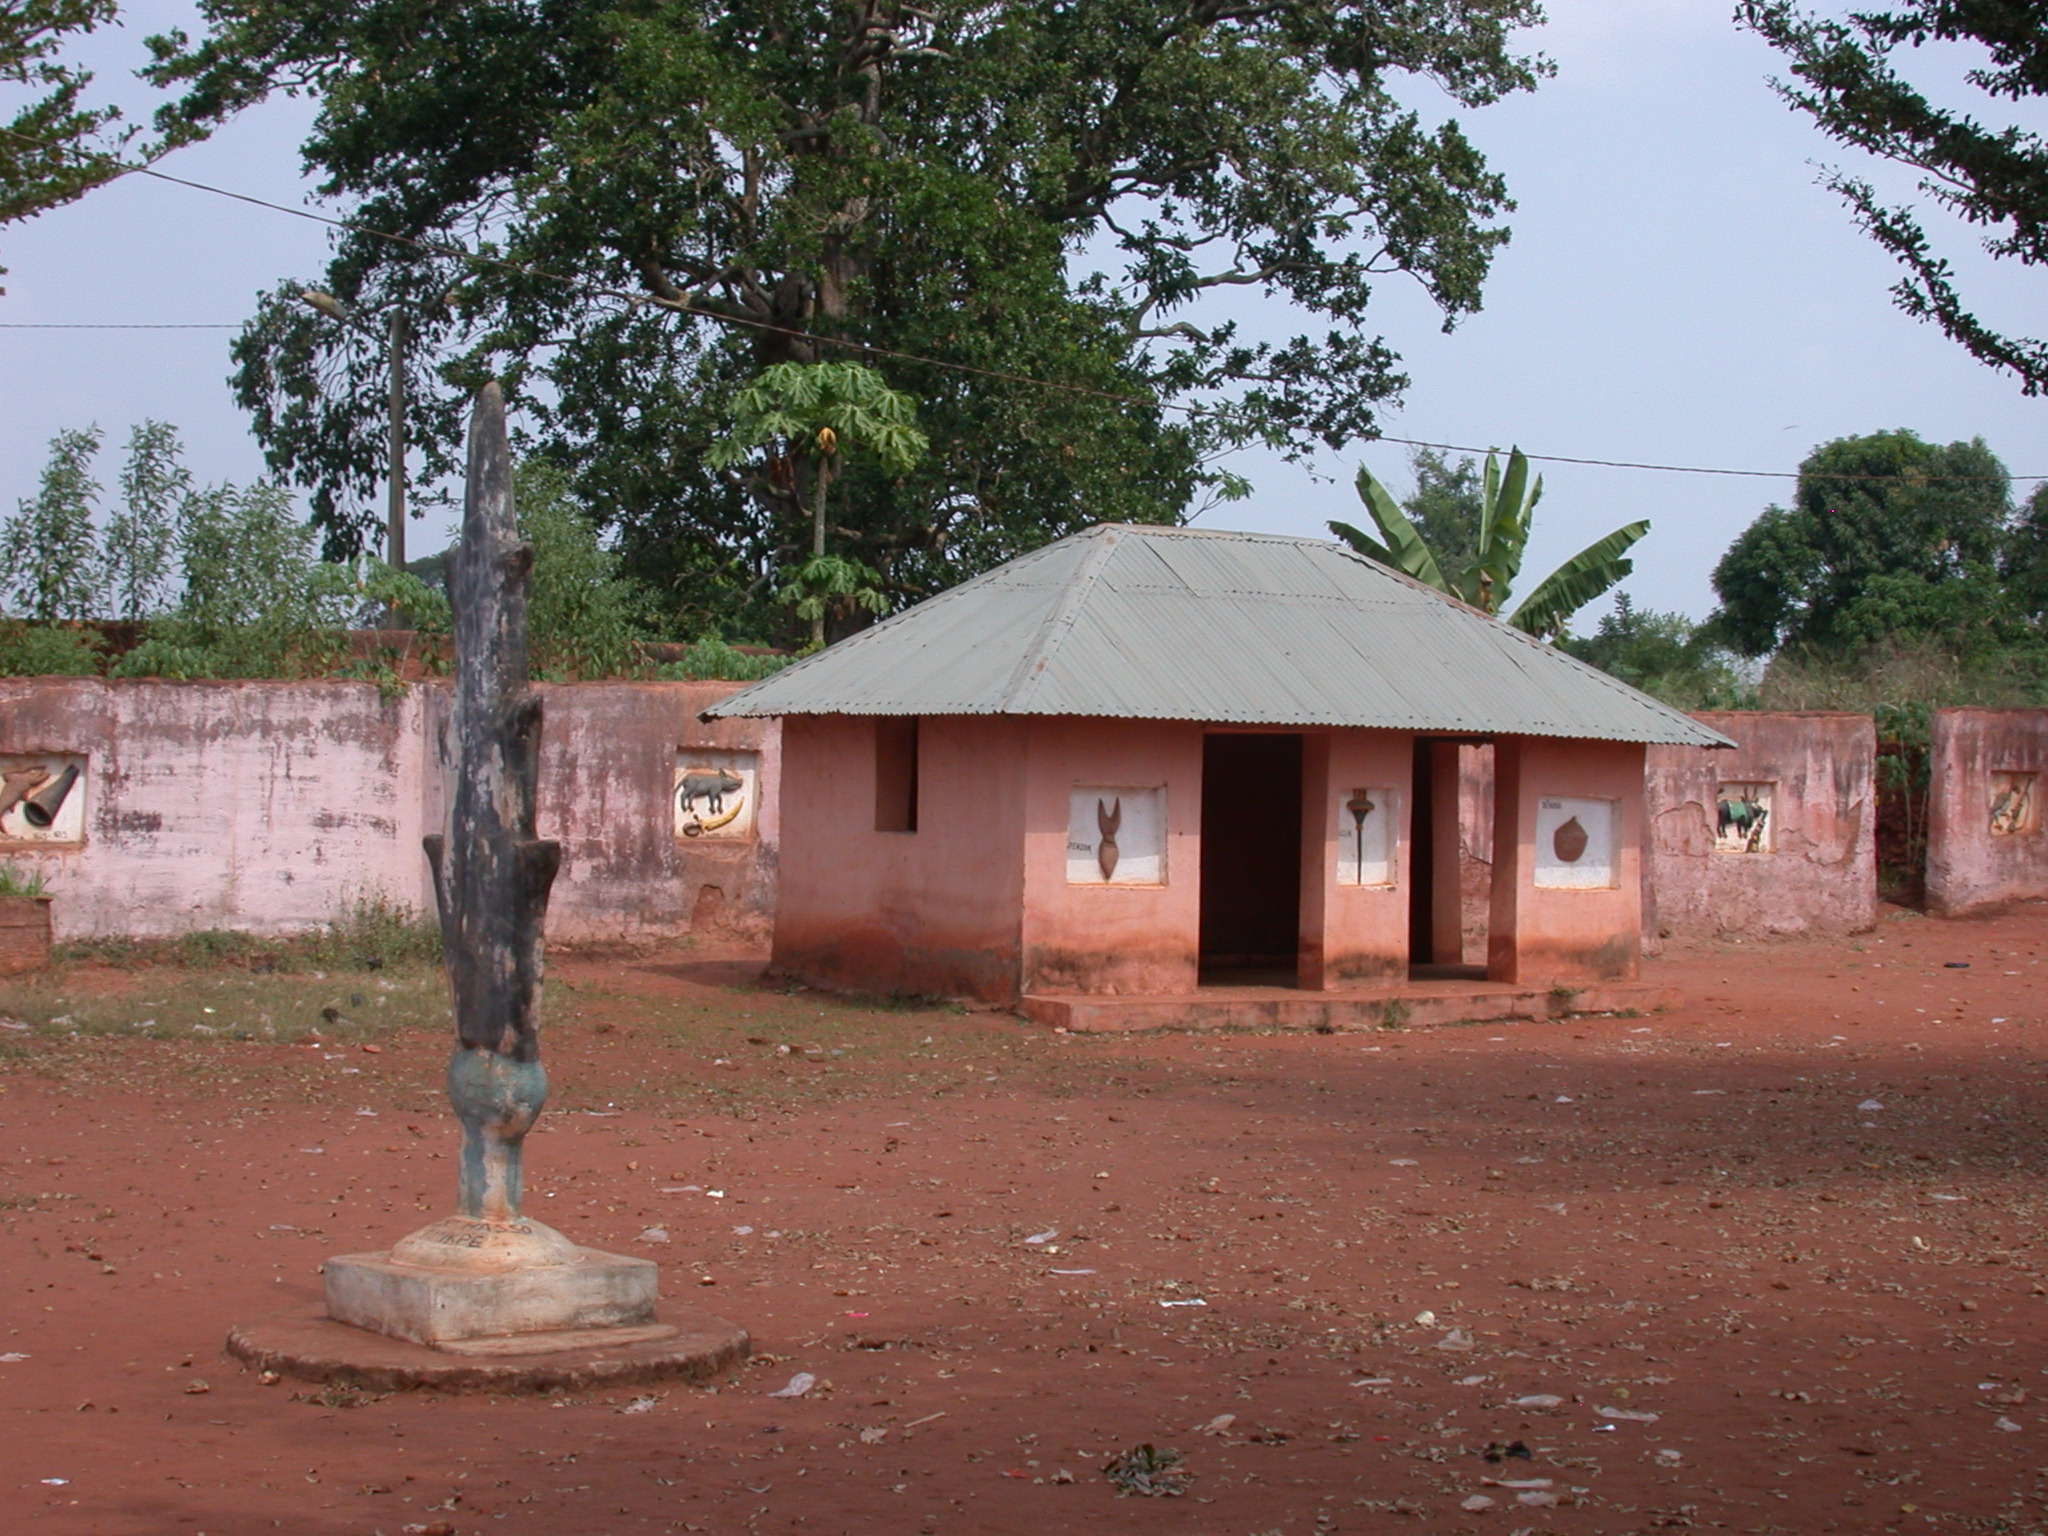 Sculpture and Building in Courtyard, Palace of Crown Prince Agonglo, Abomey, Benin